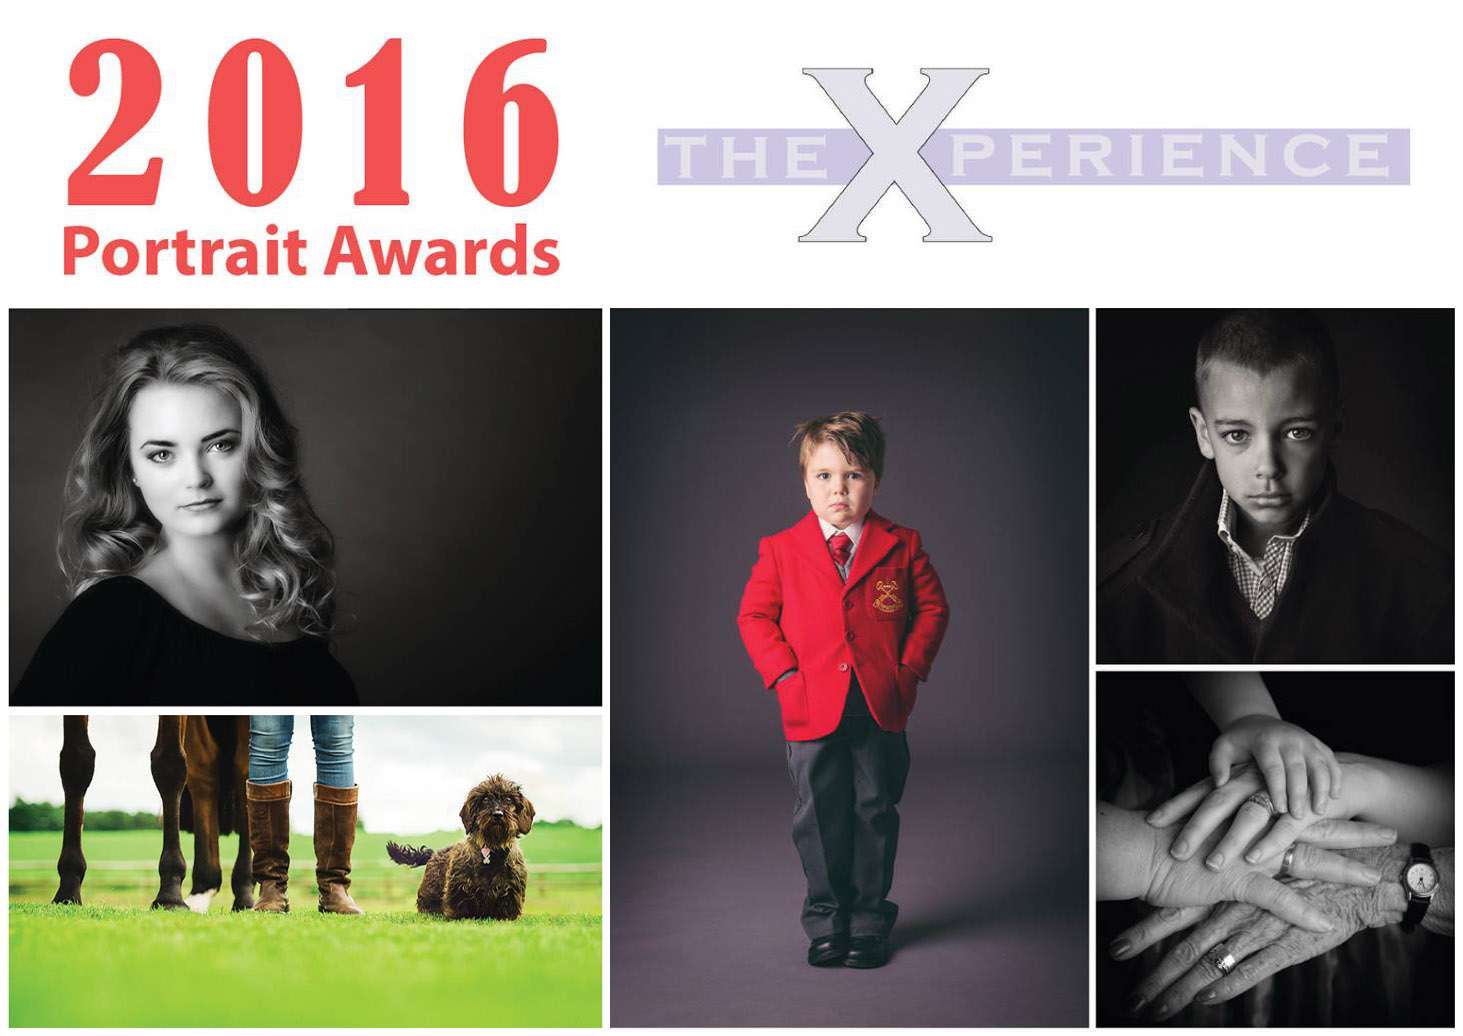 Xperience Awards 2016 Promotional Poster